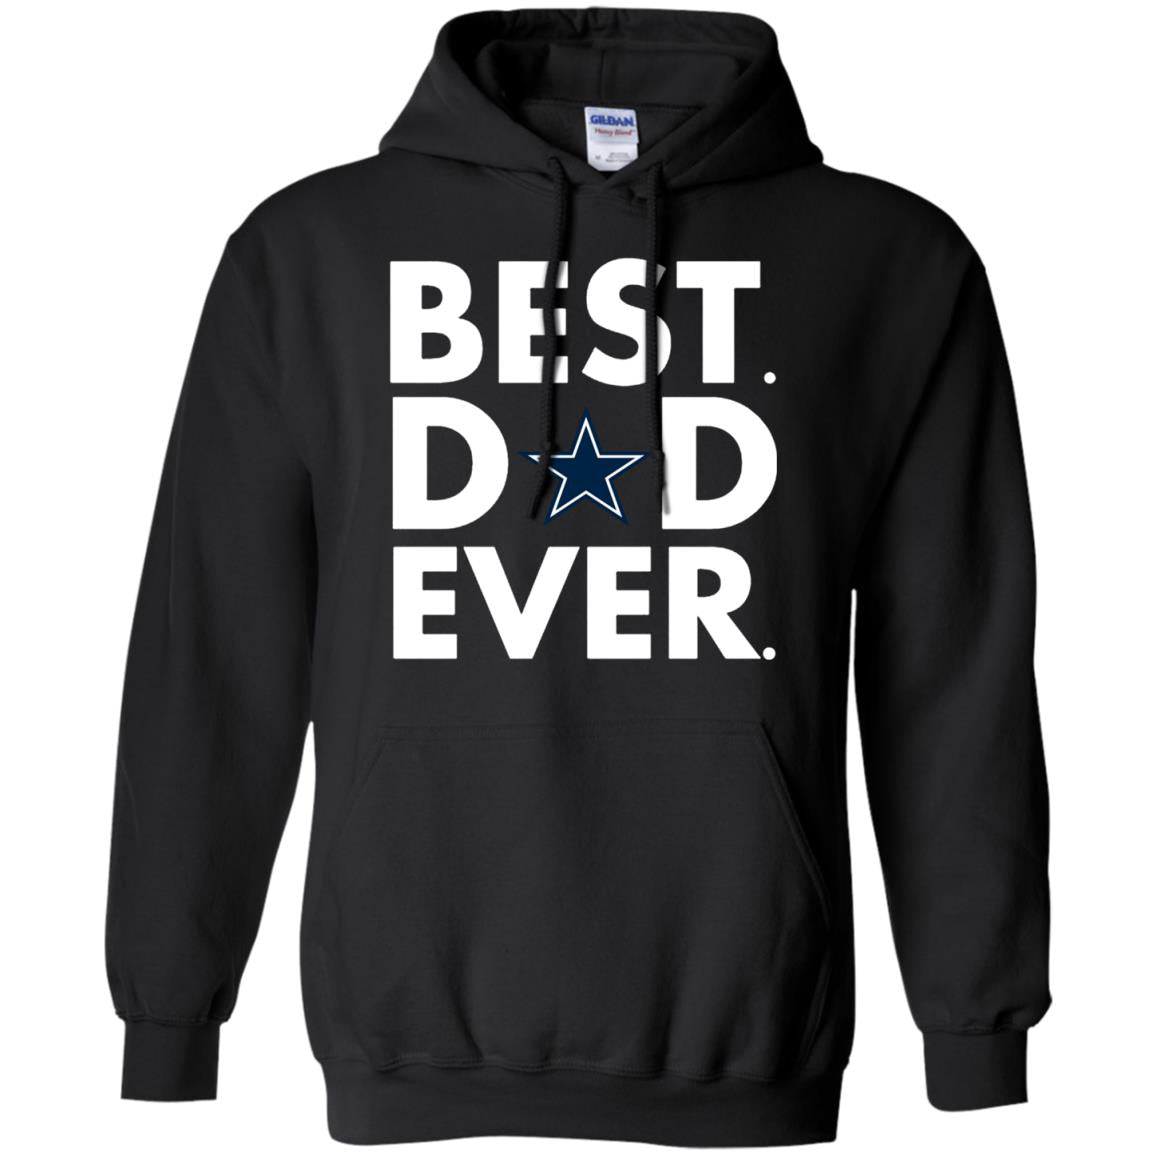 Best Dad Ever - Dallas Cowboys - Father s Day Shirt-TH - Opatee d0a22363f